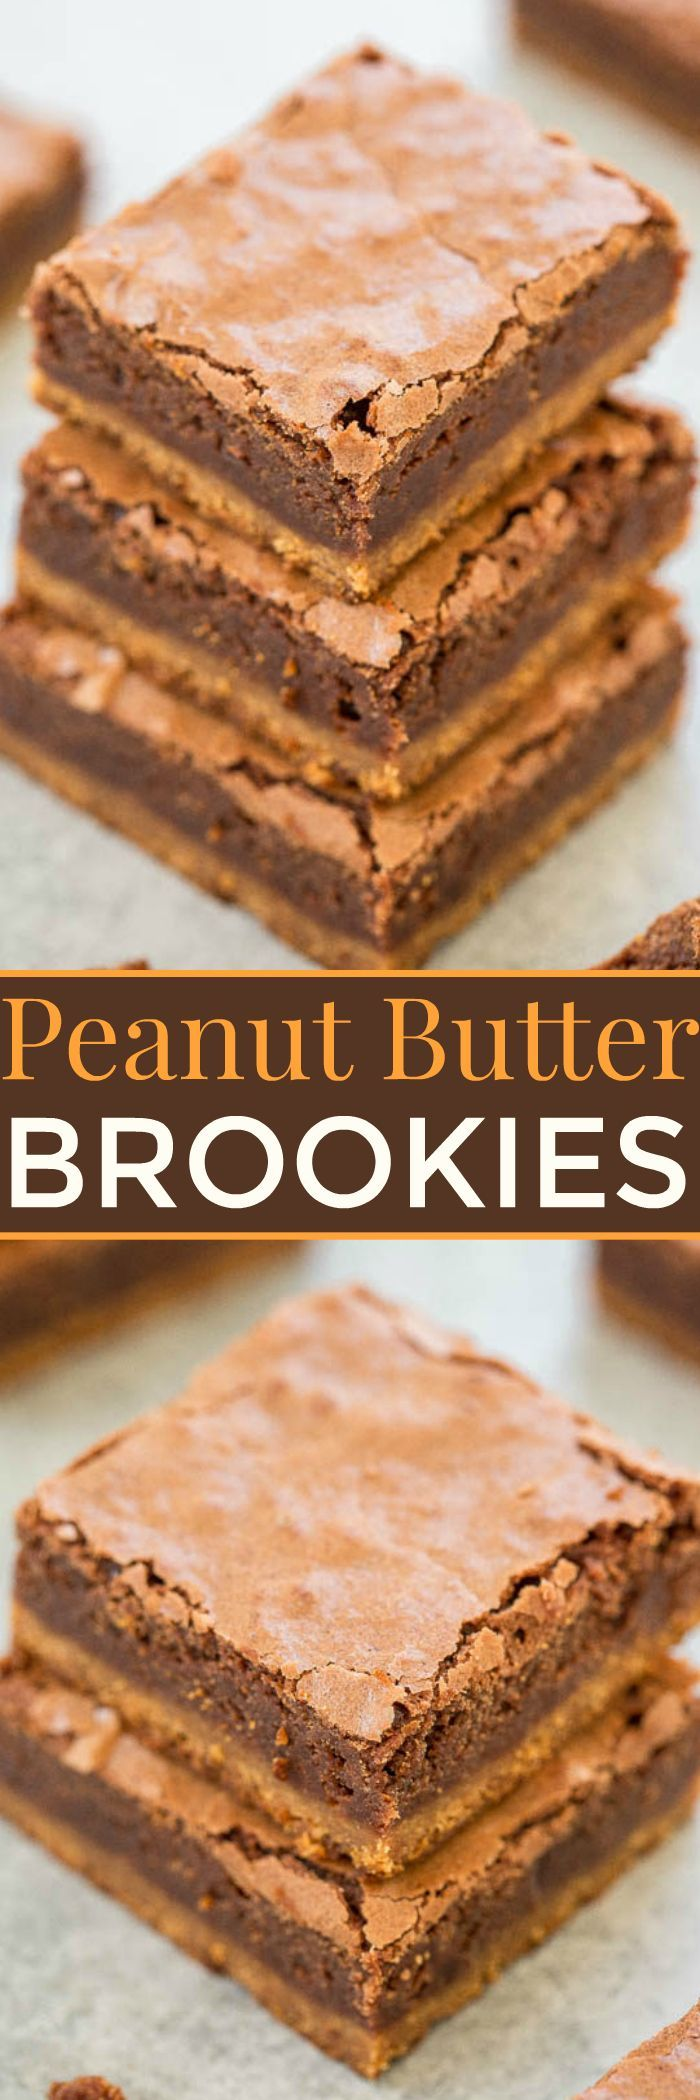 A soft and chewy peanut butter cookie base with a rich fudgy brownie recipe on top. The brownies have a thin crackly top and stay fudgy…